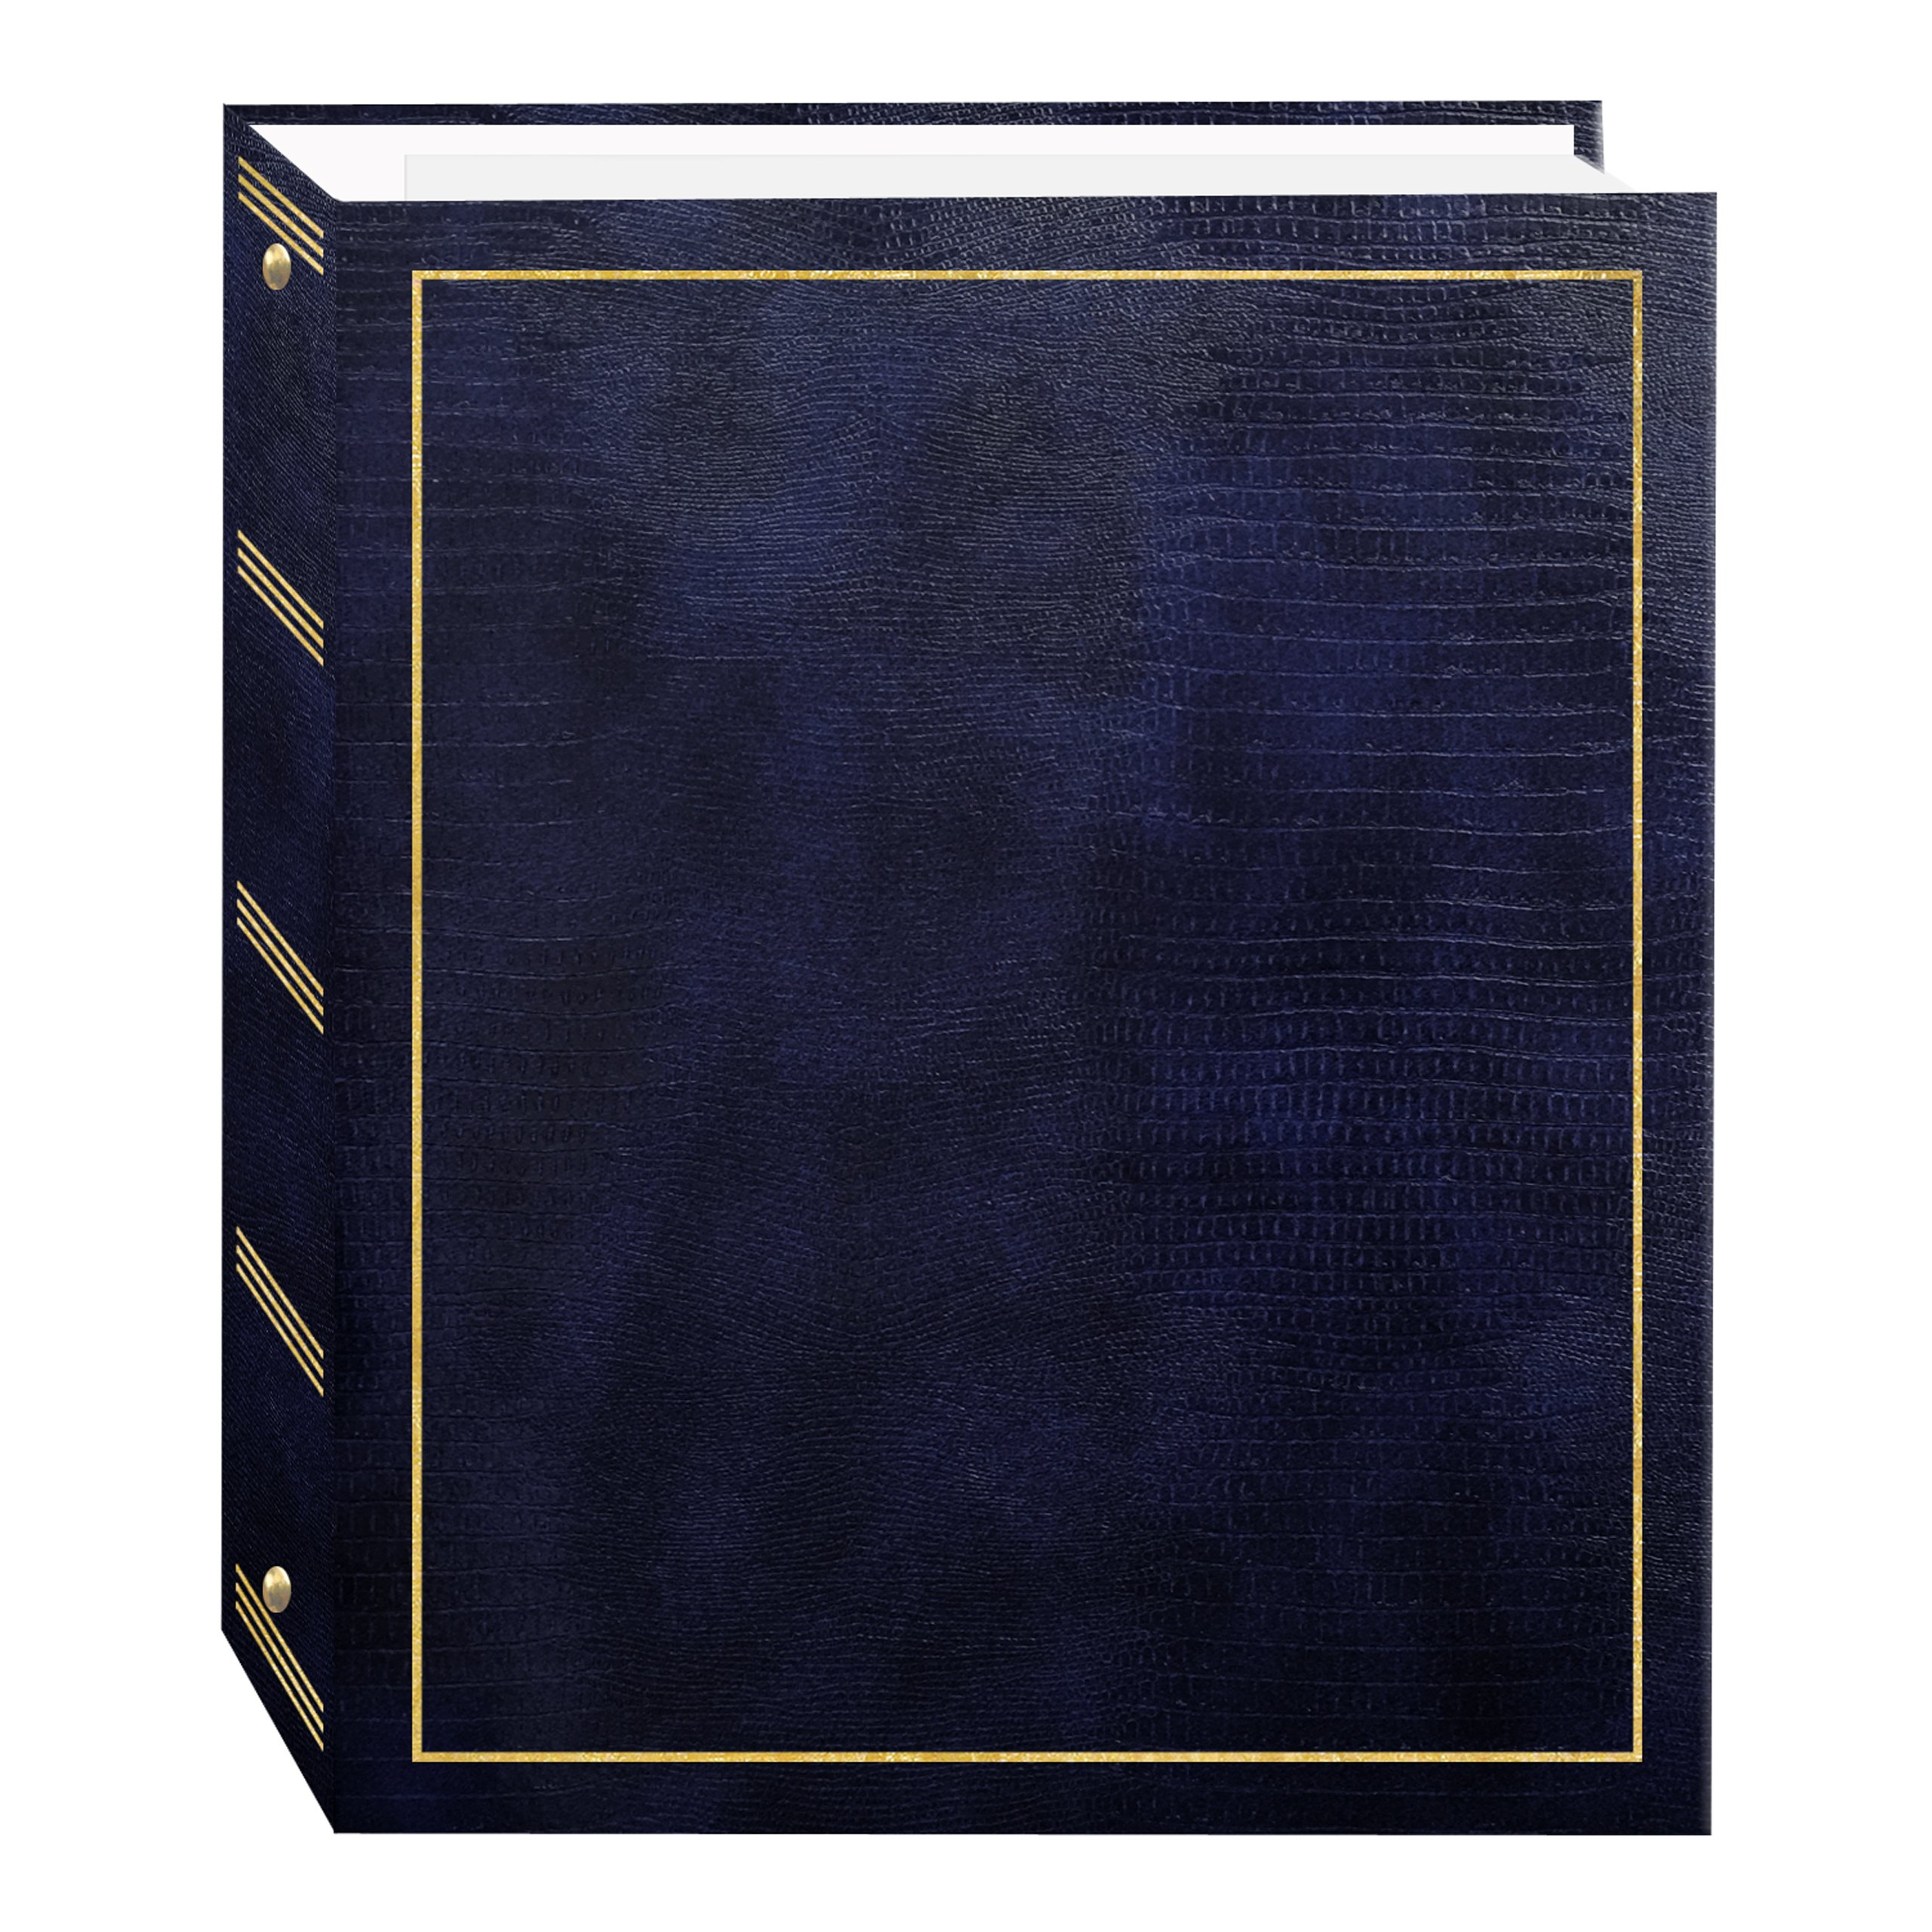 Pioneer Photo Albums Magnetic Self-Stick 3-Ring Photo Album 100 Pages (50 Sheets), Navy Blue by Pioneer Photo Albums